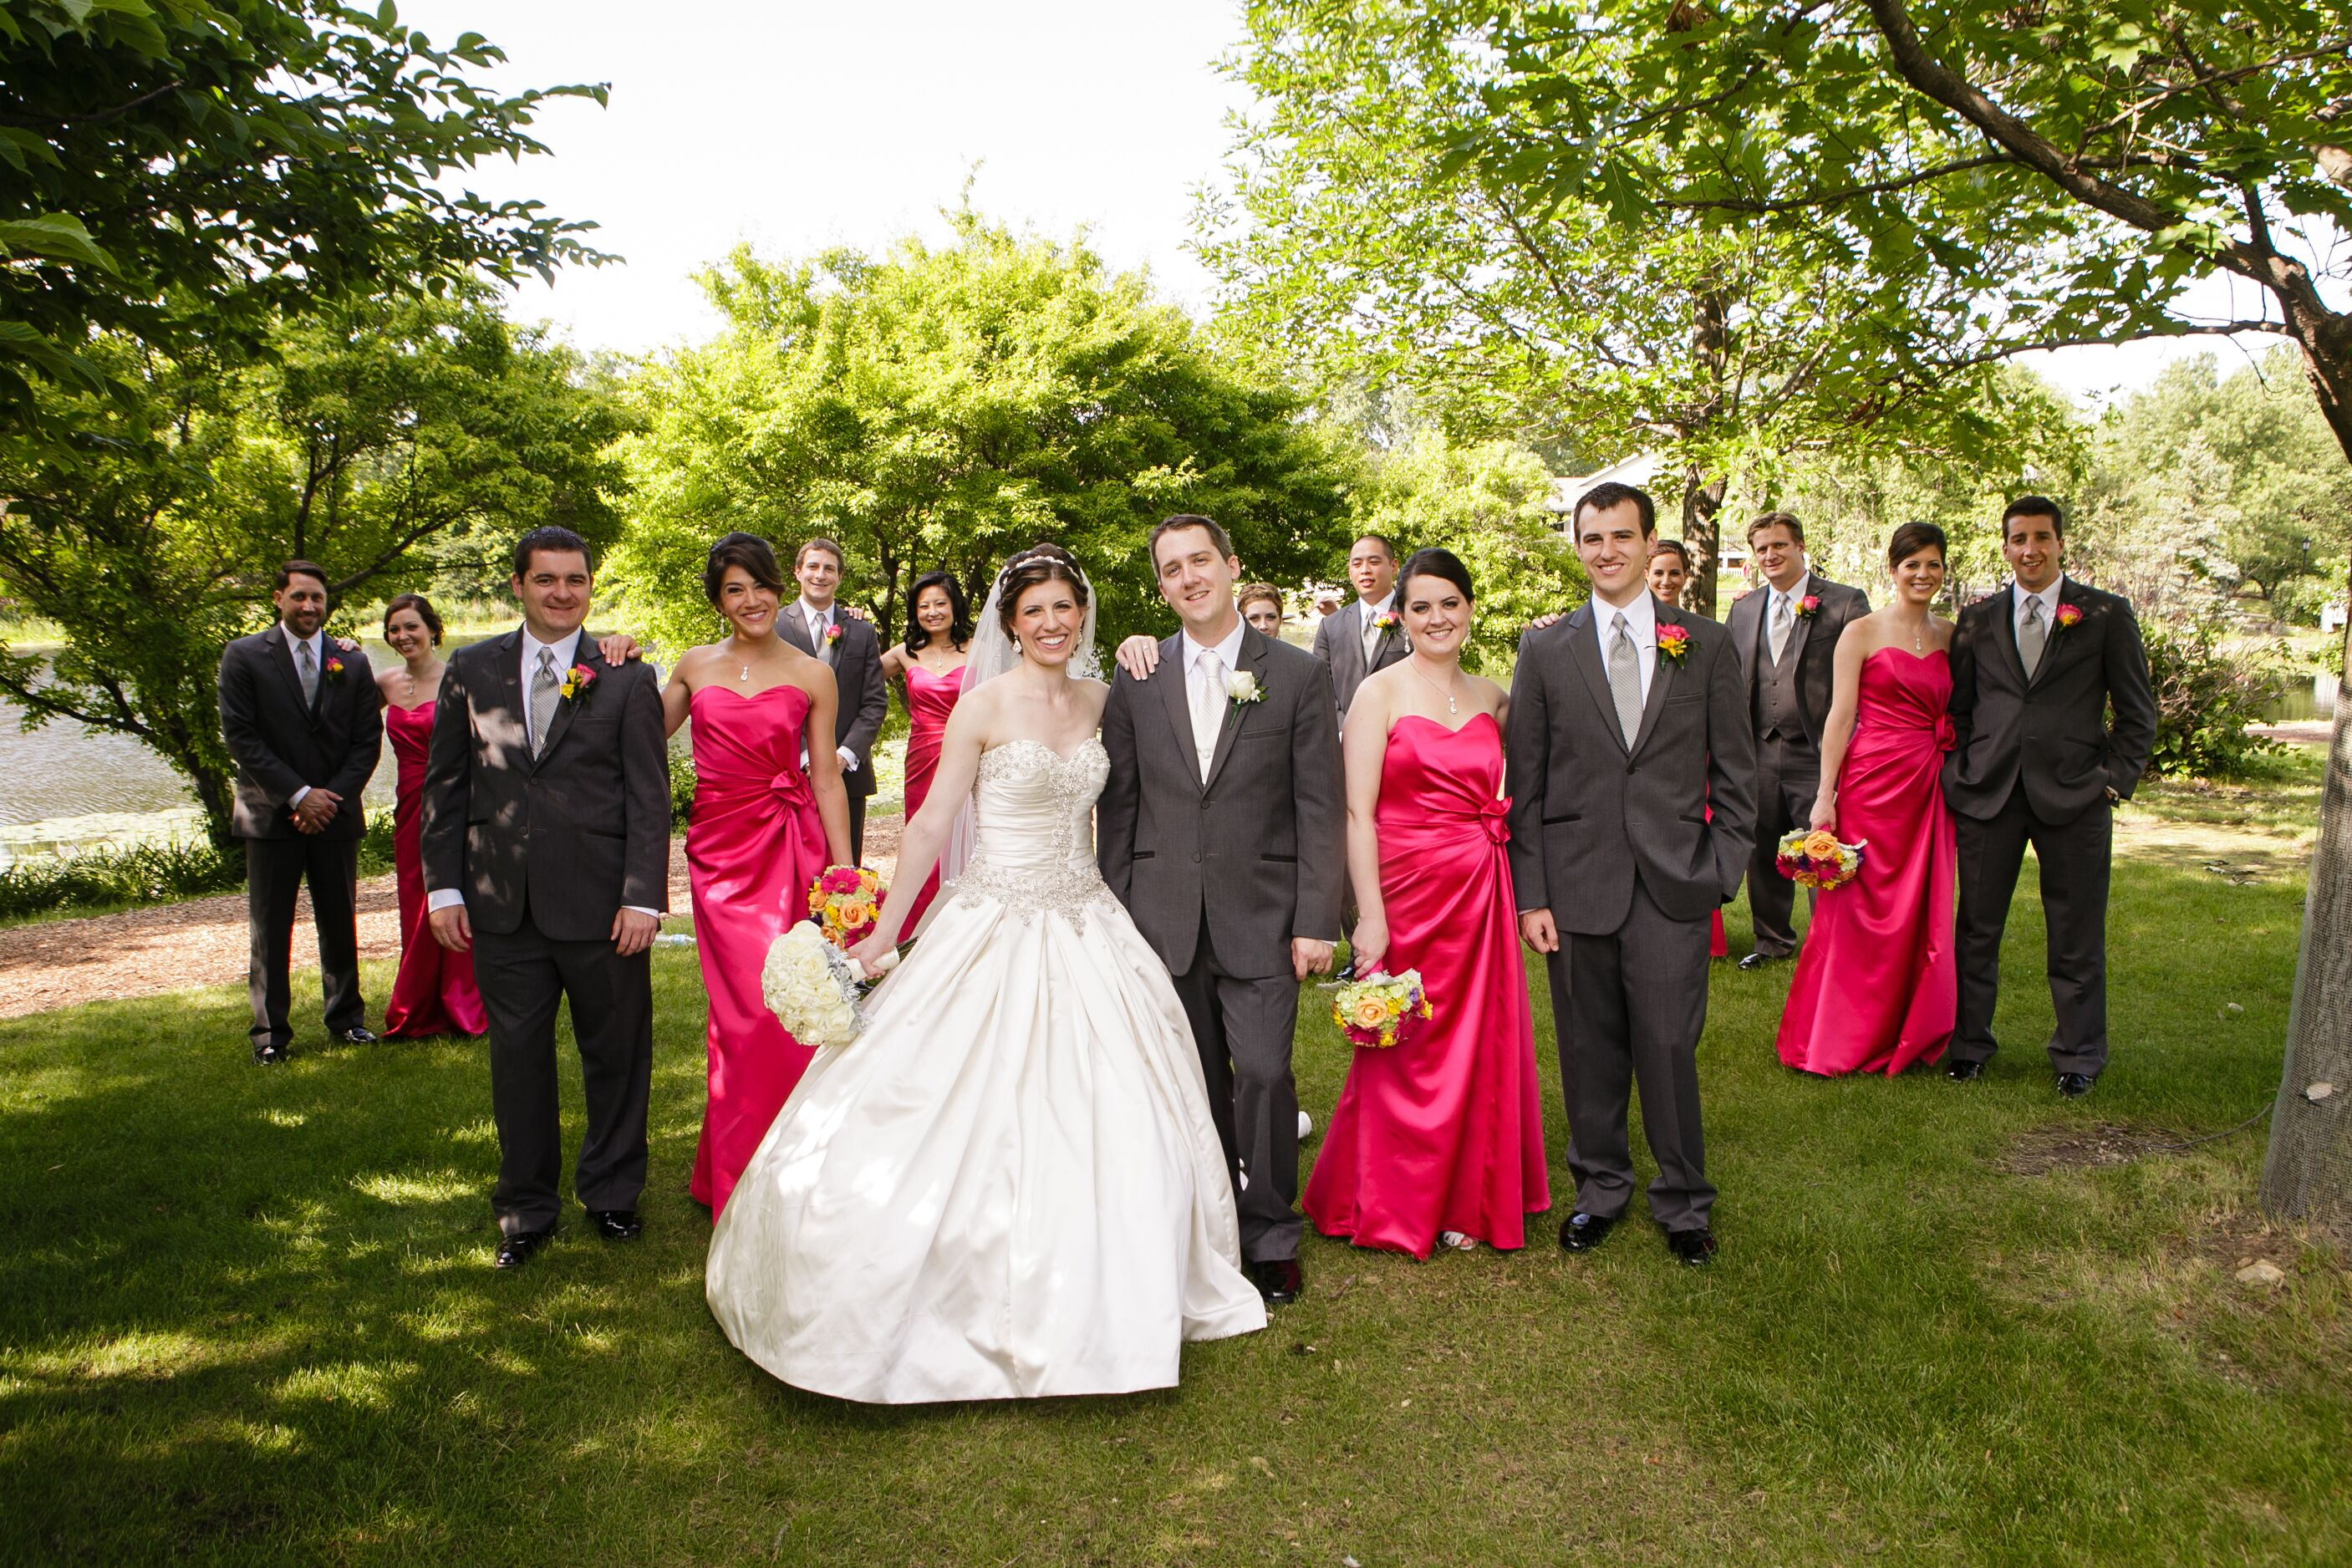 The Wedding Party In Hot Pink Floor Length Dresses And